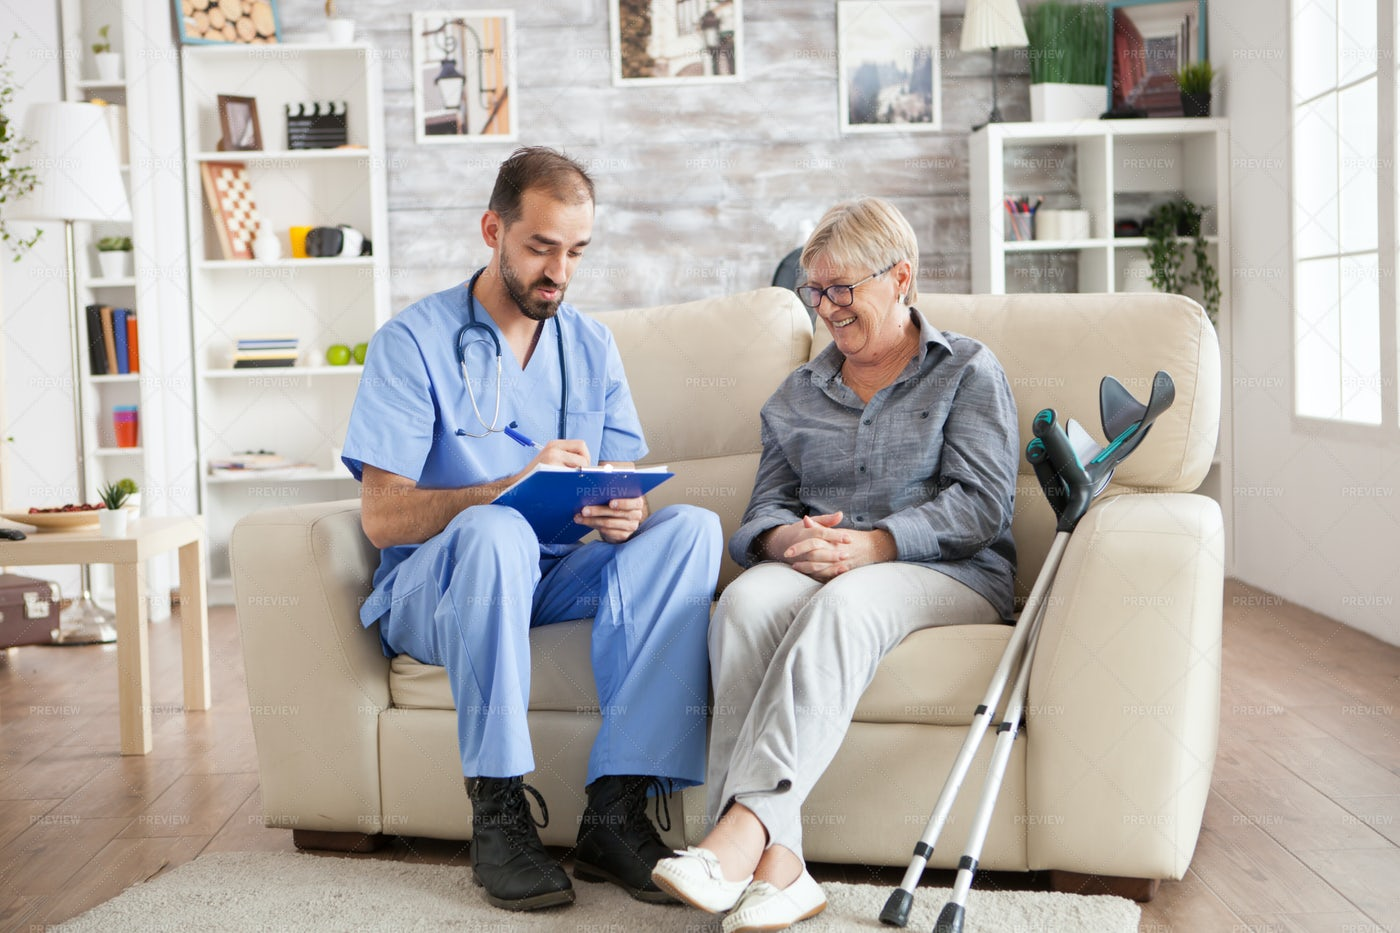 Laughing With Doctor At Nursing Home: Stock Photos